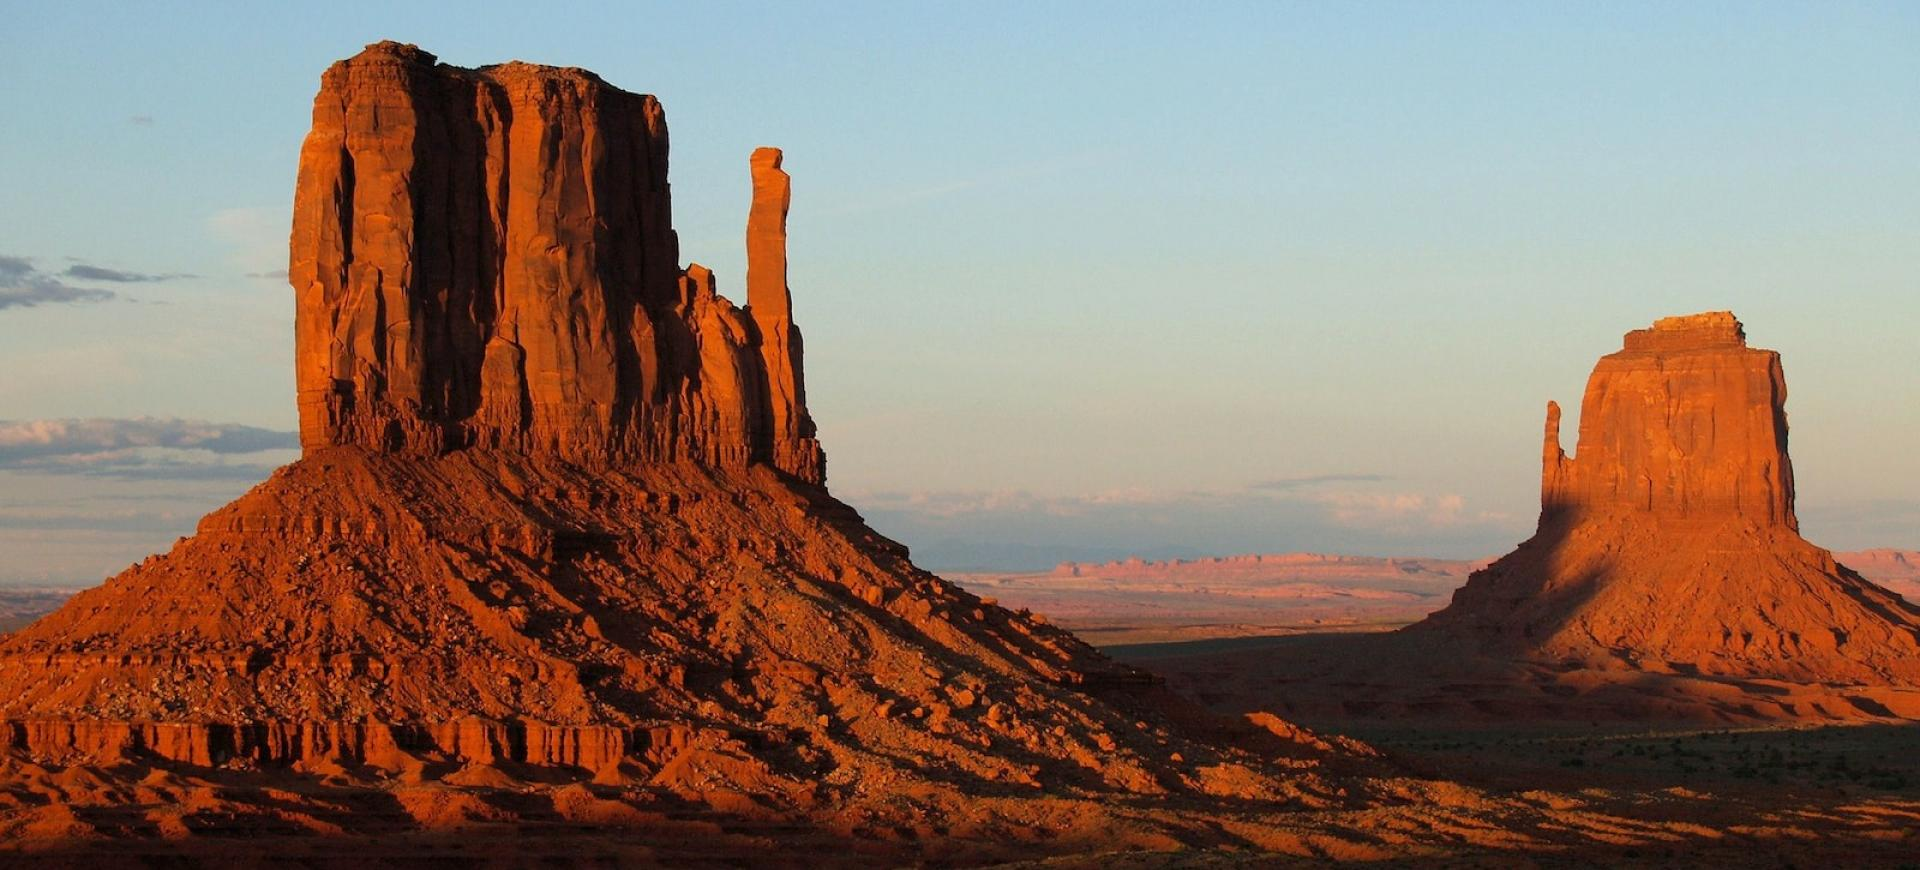 monument-valley-parki-narodowe